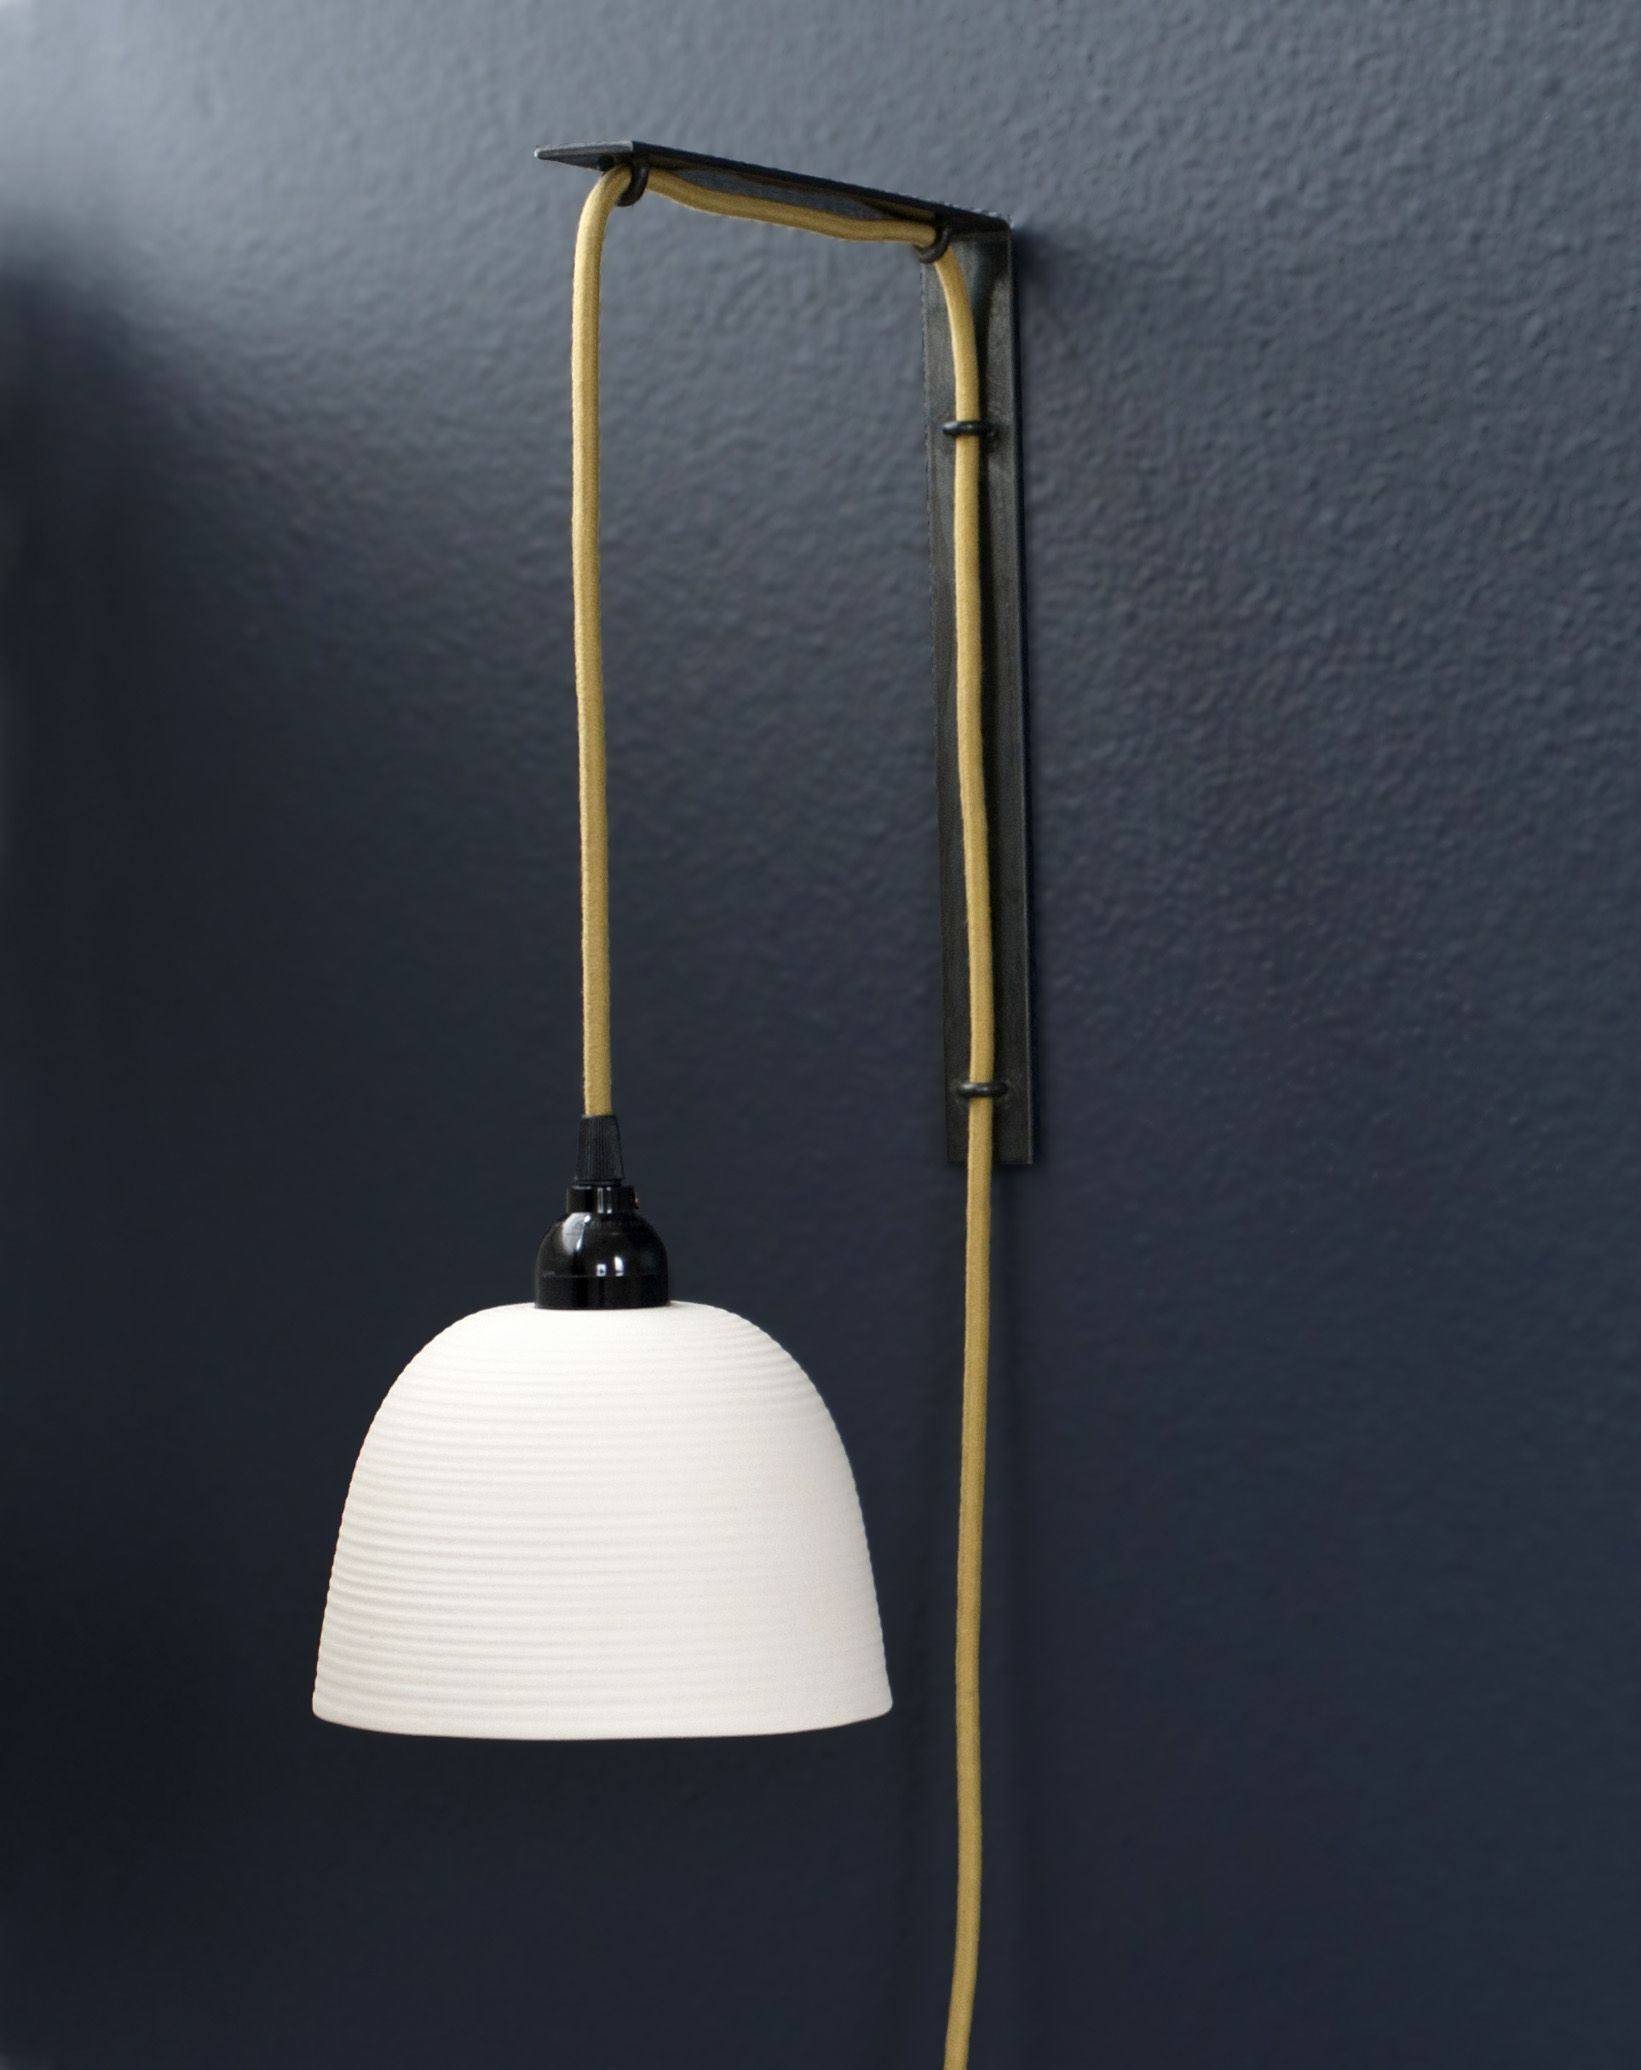 This Wall Mounted Pendant Sconce Is Suspended By A Curry Colored Cloth Cord Threaded Through A Locally Made Steel Bracket Pendant Sconce Sconces Ceramic Lamp